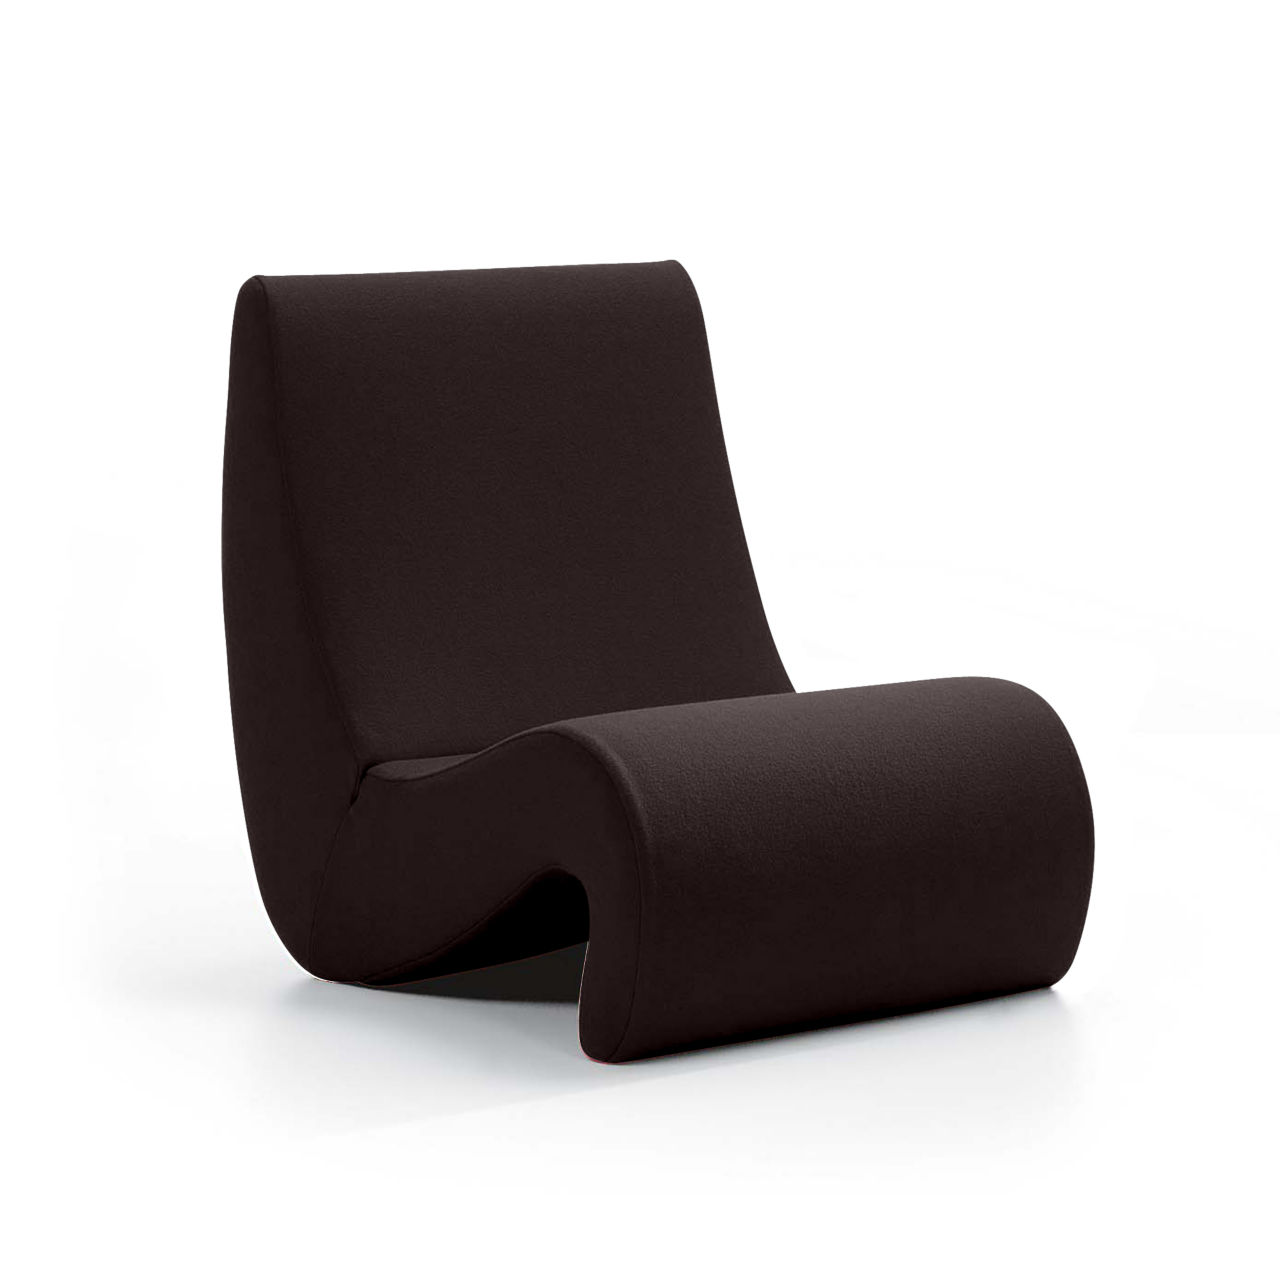 Amoebe Chair in Chocolate Highback by Vitra